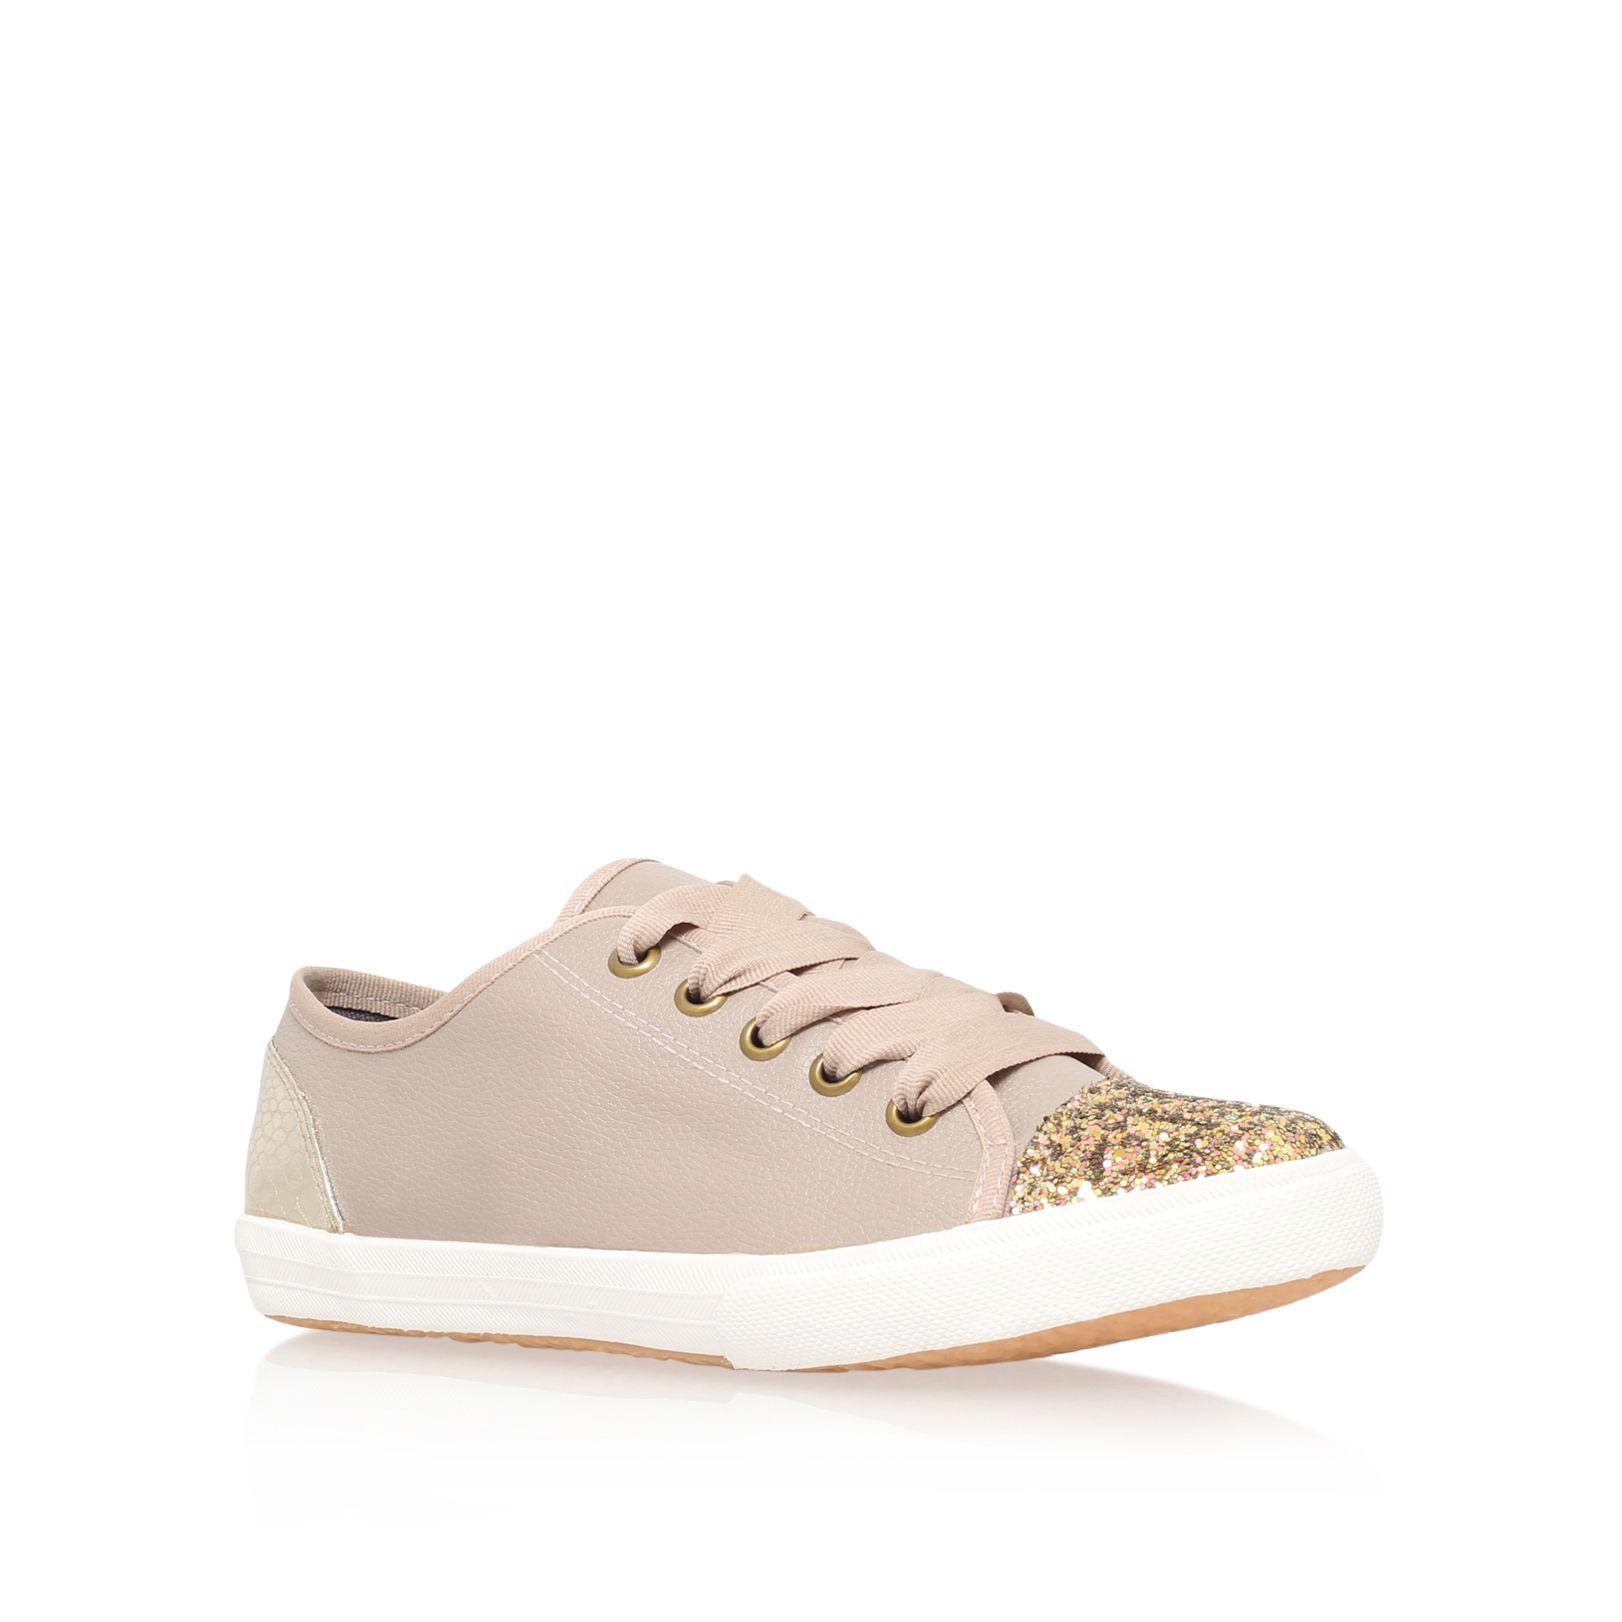 KG by Kurt Geiger Lucca Glitter Trainers, Nude at John